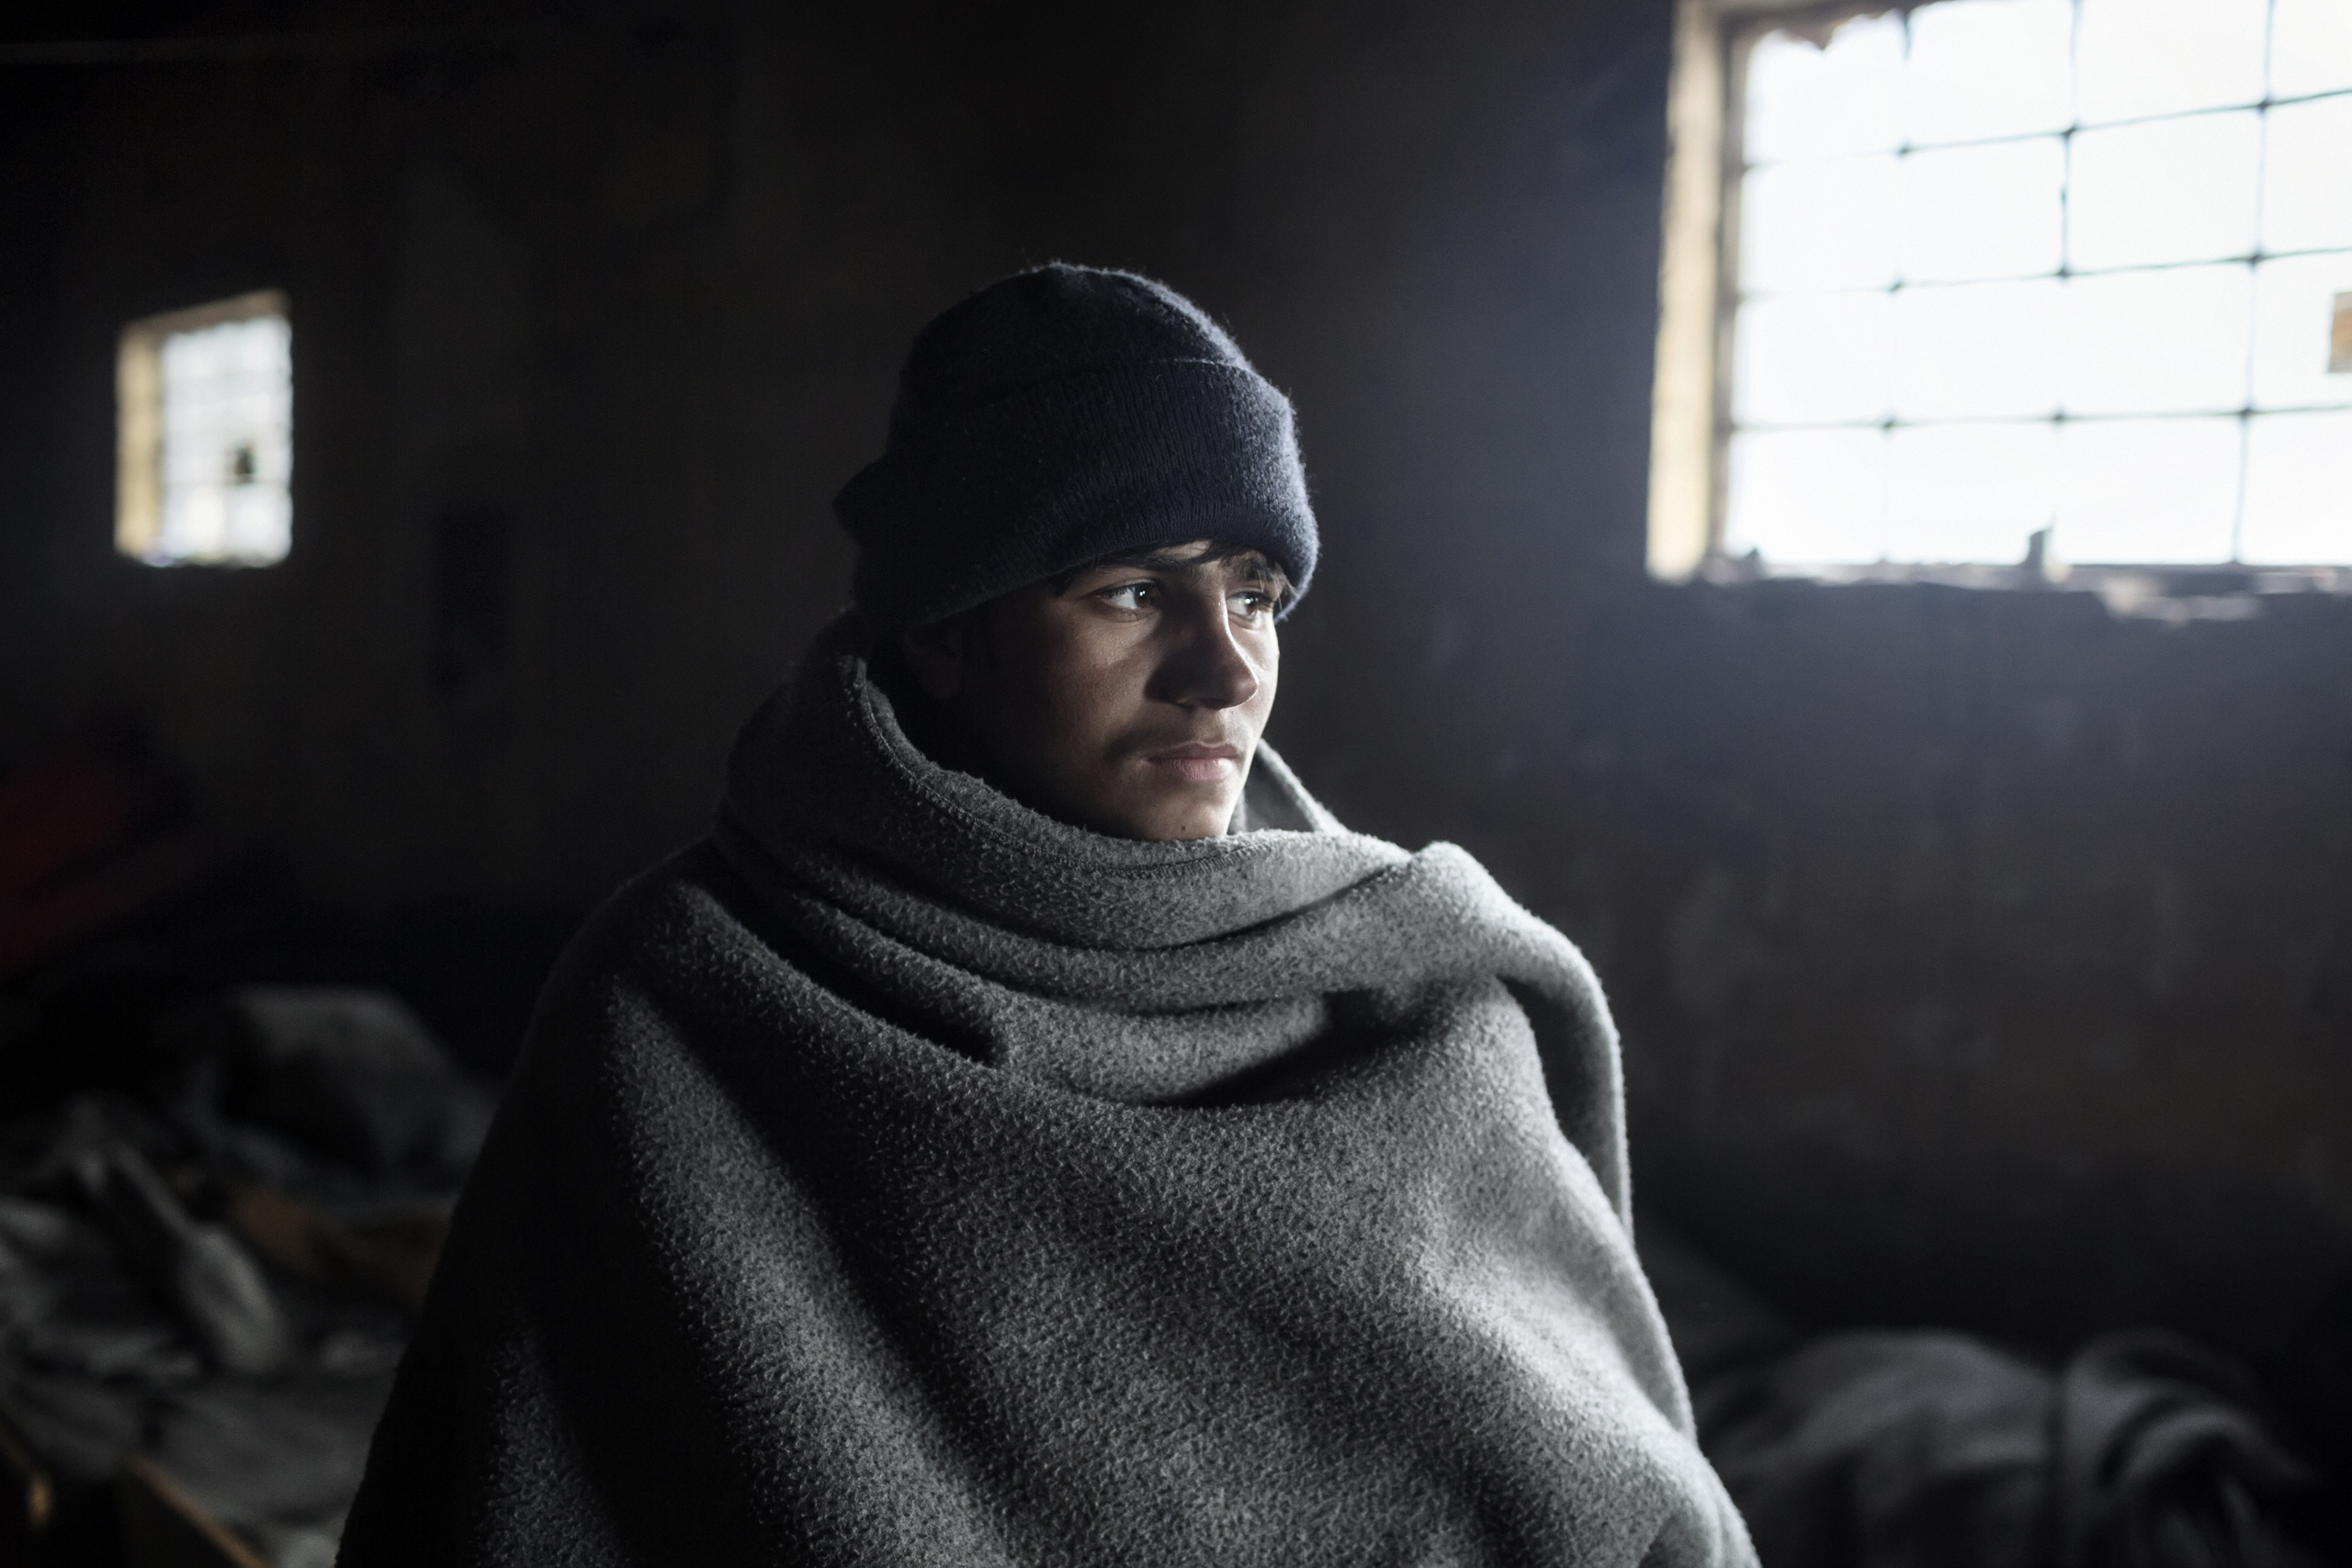 Handar, 14, an unaccompanied minor from Afghanistan lives in an abandoned building near the train station in Belgrade, Serbia, Jan. 2017.